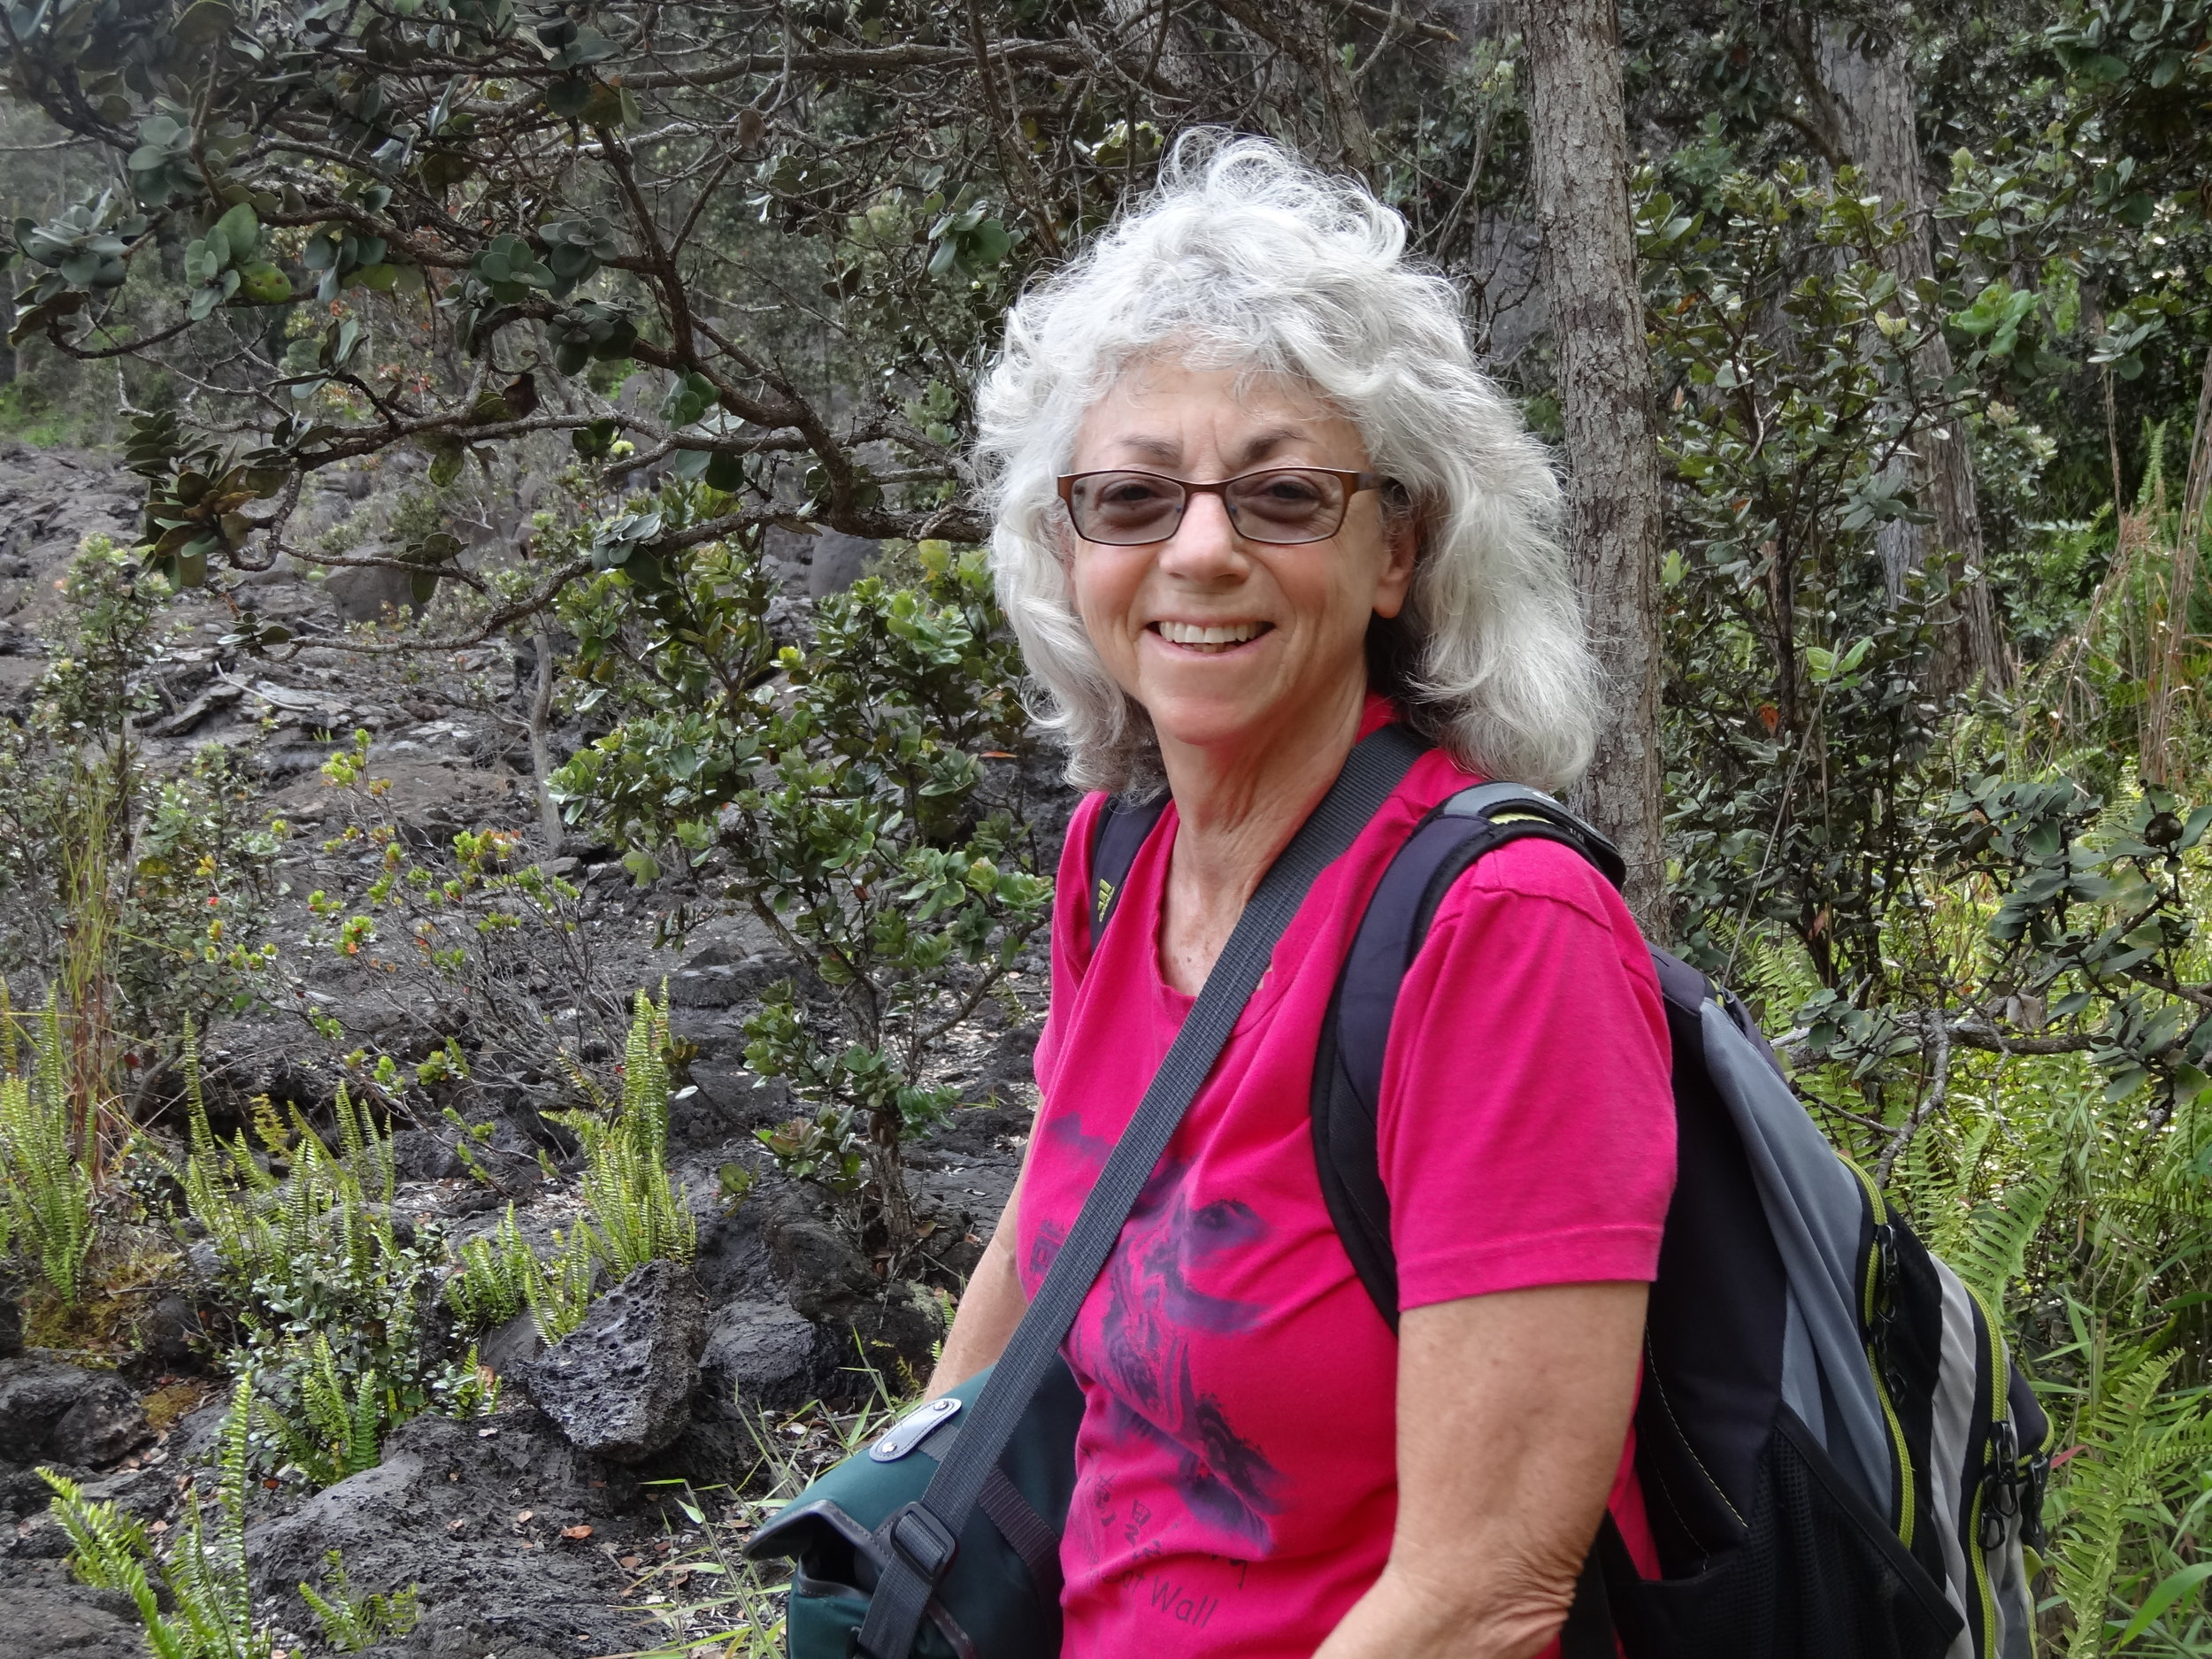 Linda Thomas is a retired teacher and videographer living in Ashland, Oregon.  She loves the outdoors and enjoys doing volunteer photography for local environmental groups such as Vesper Meadow and the Southern Oregon Land Conservancy. We are so pleased to work with her!